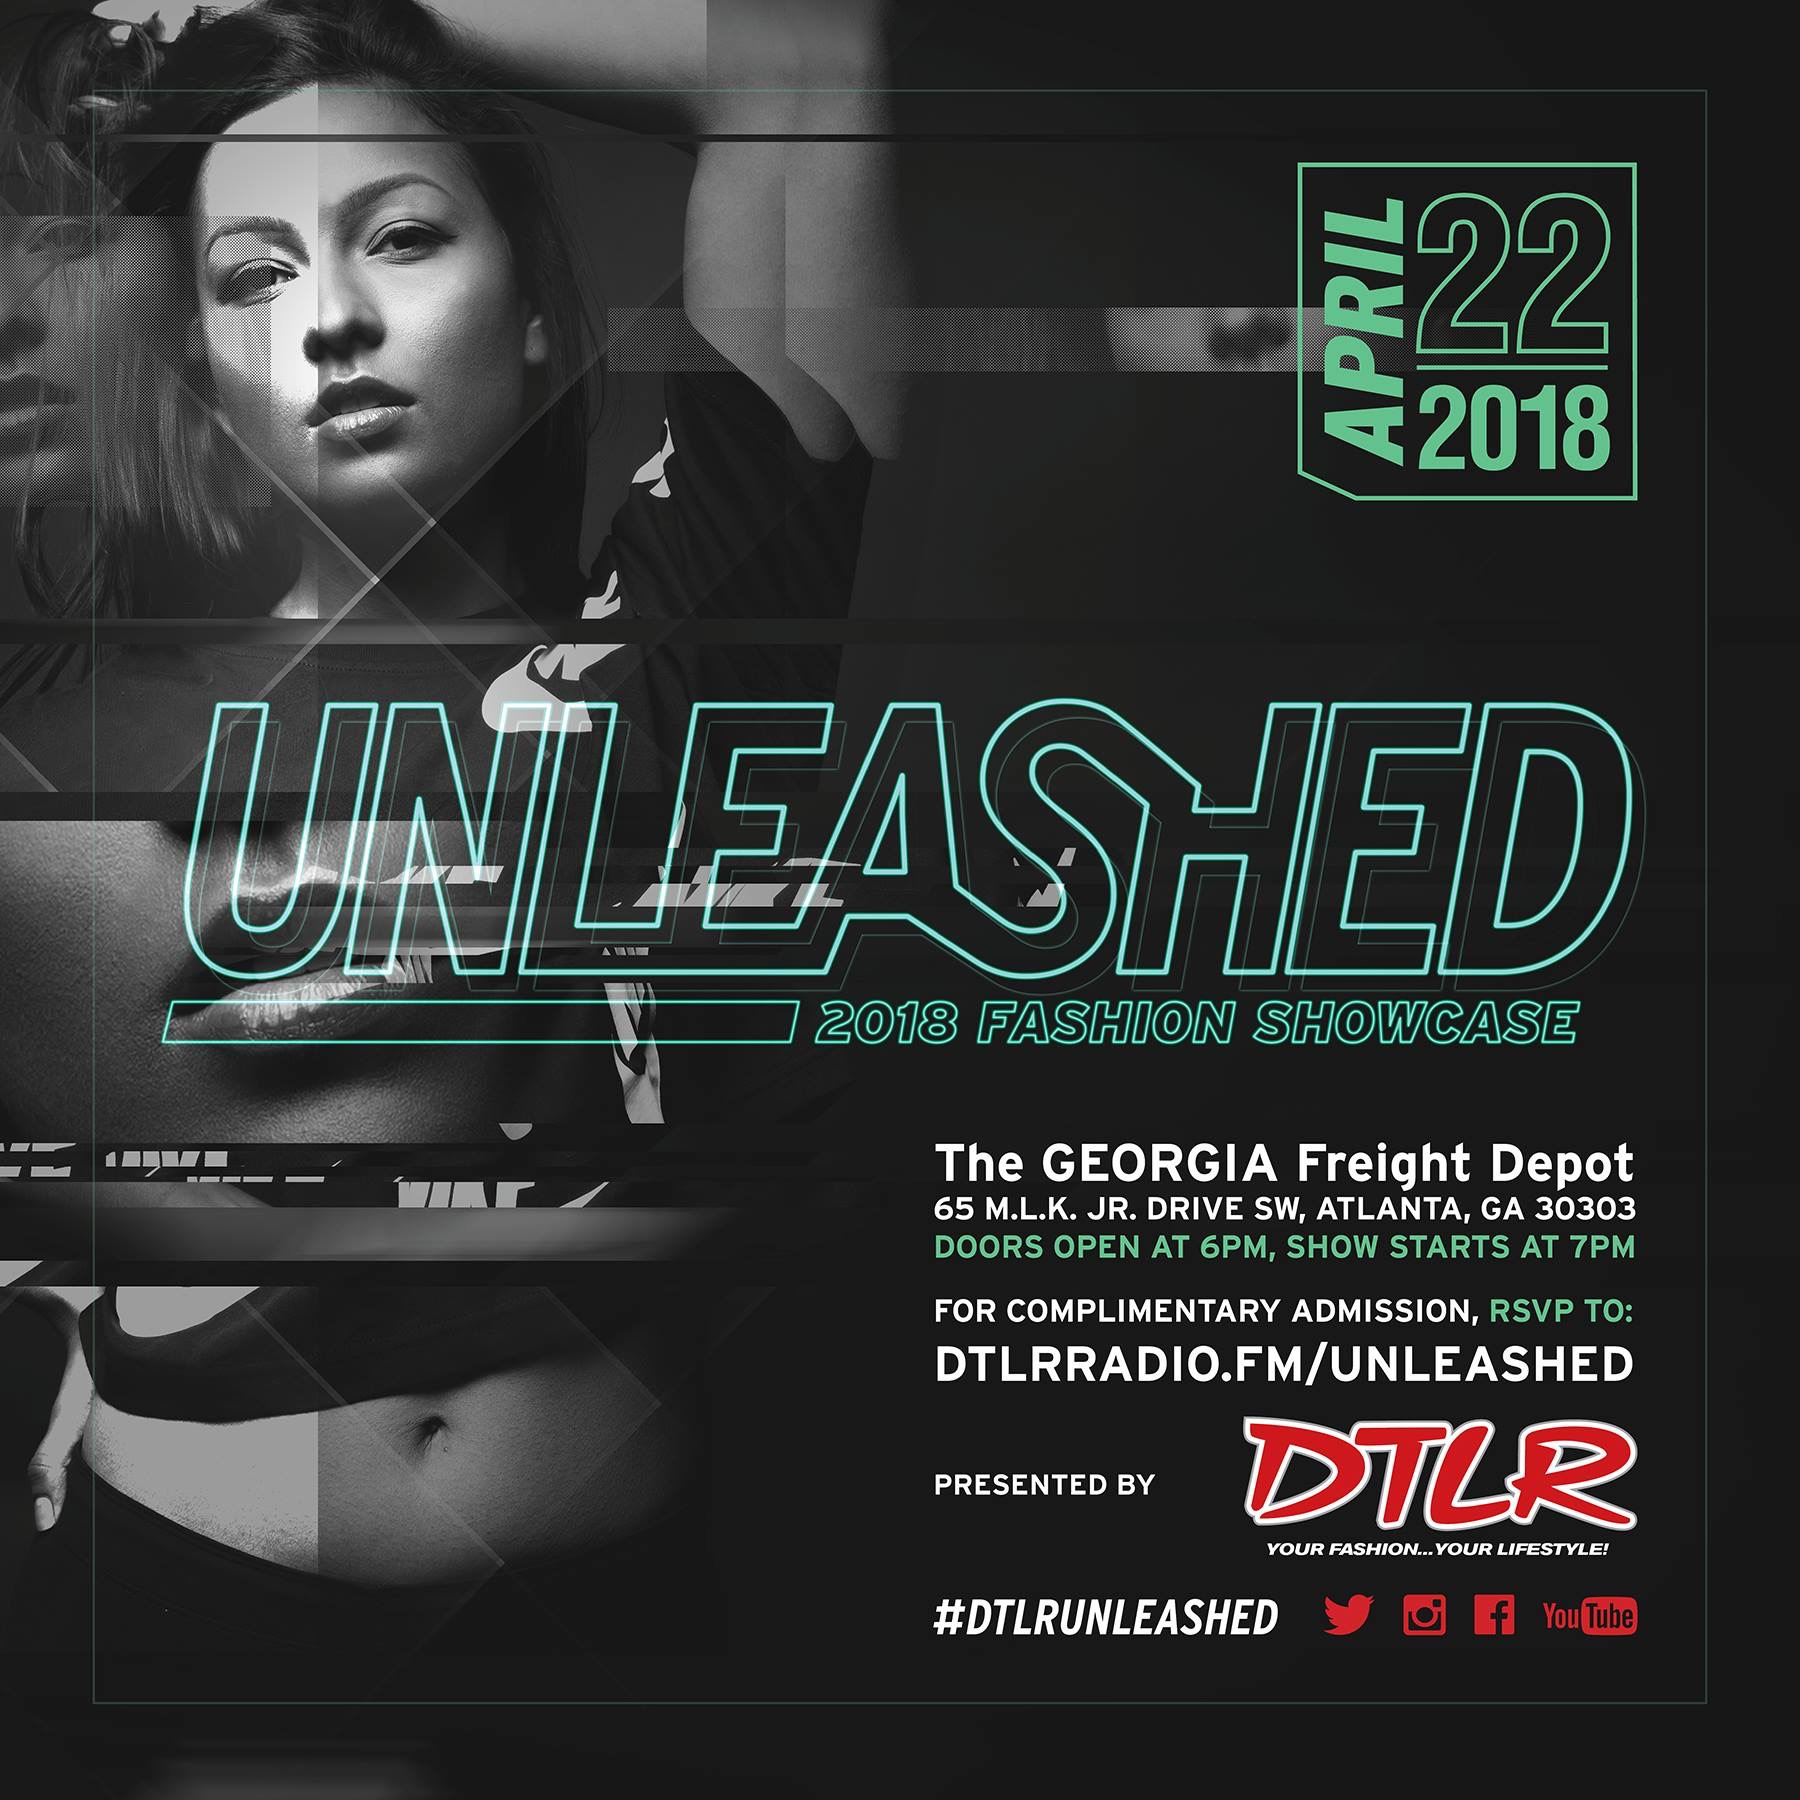 DTLR Unleashed Fashion Show